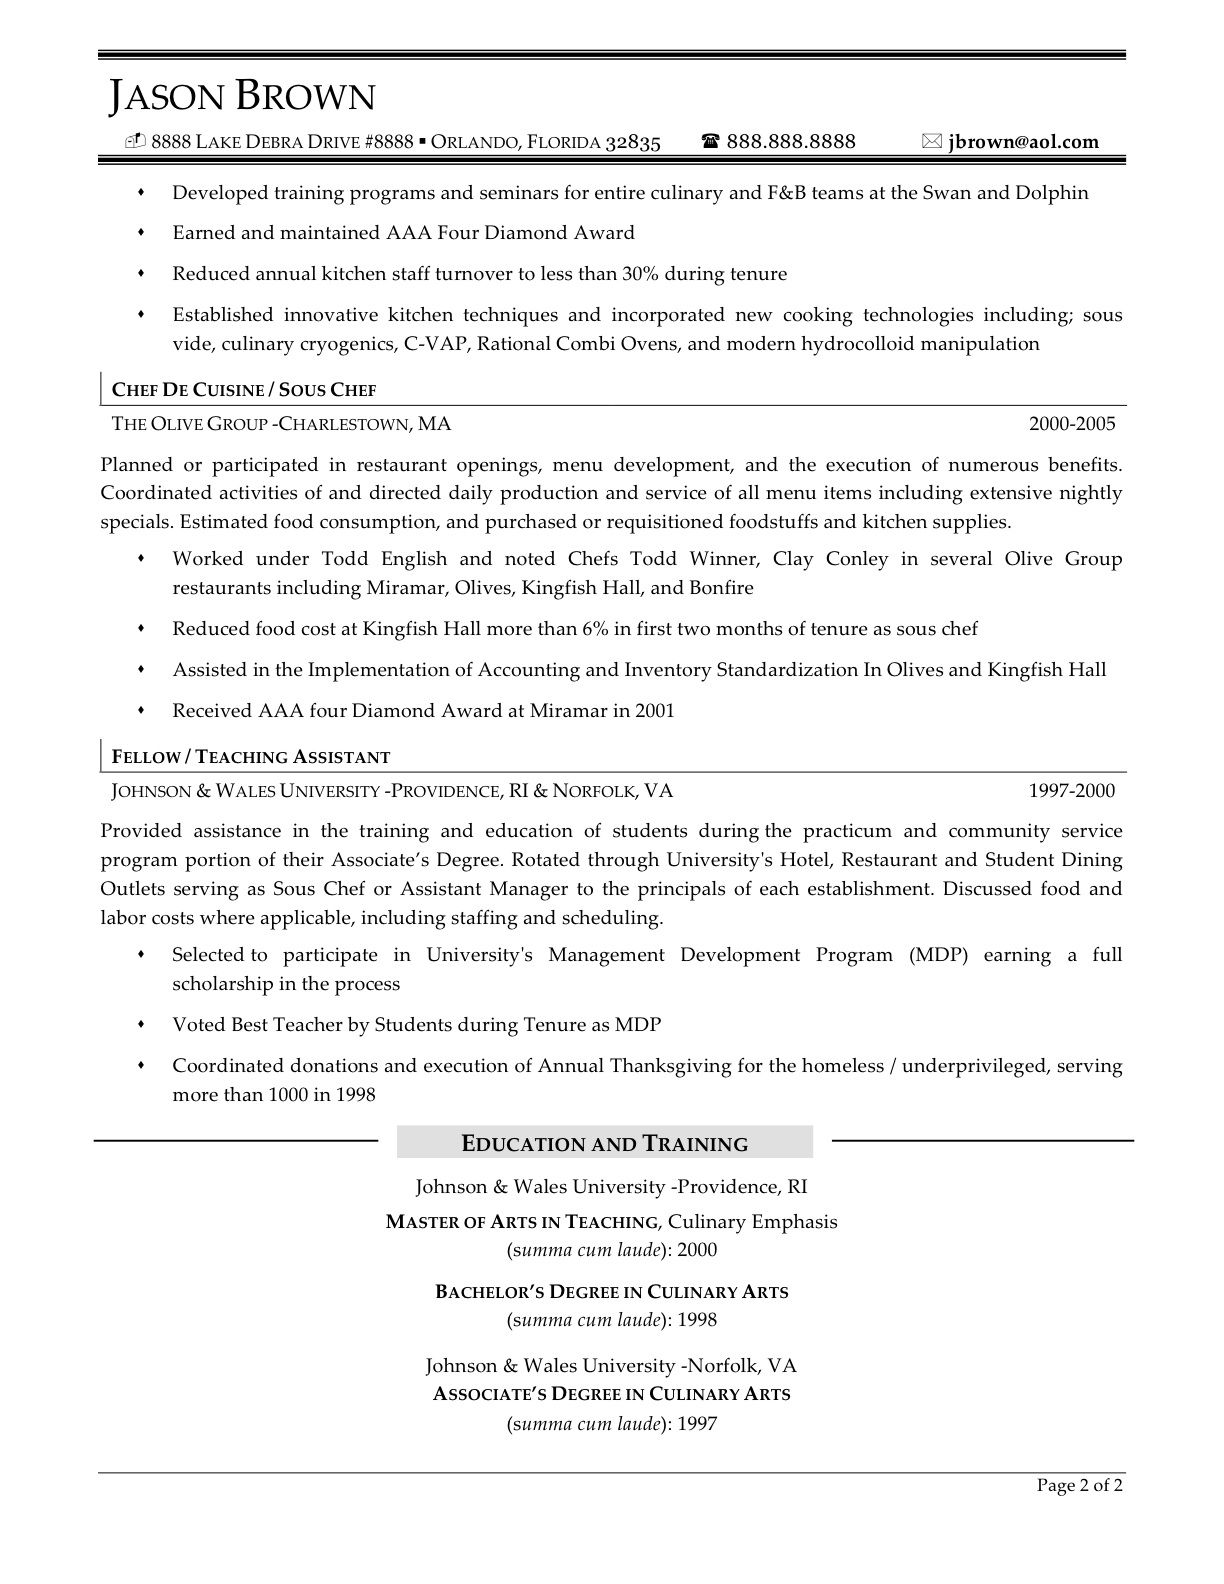 Executive Chef Resume Chef Cook Resume Examples  Httpwwwjobresumewebsitechefcook